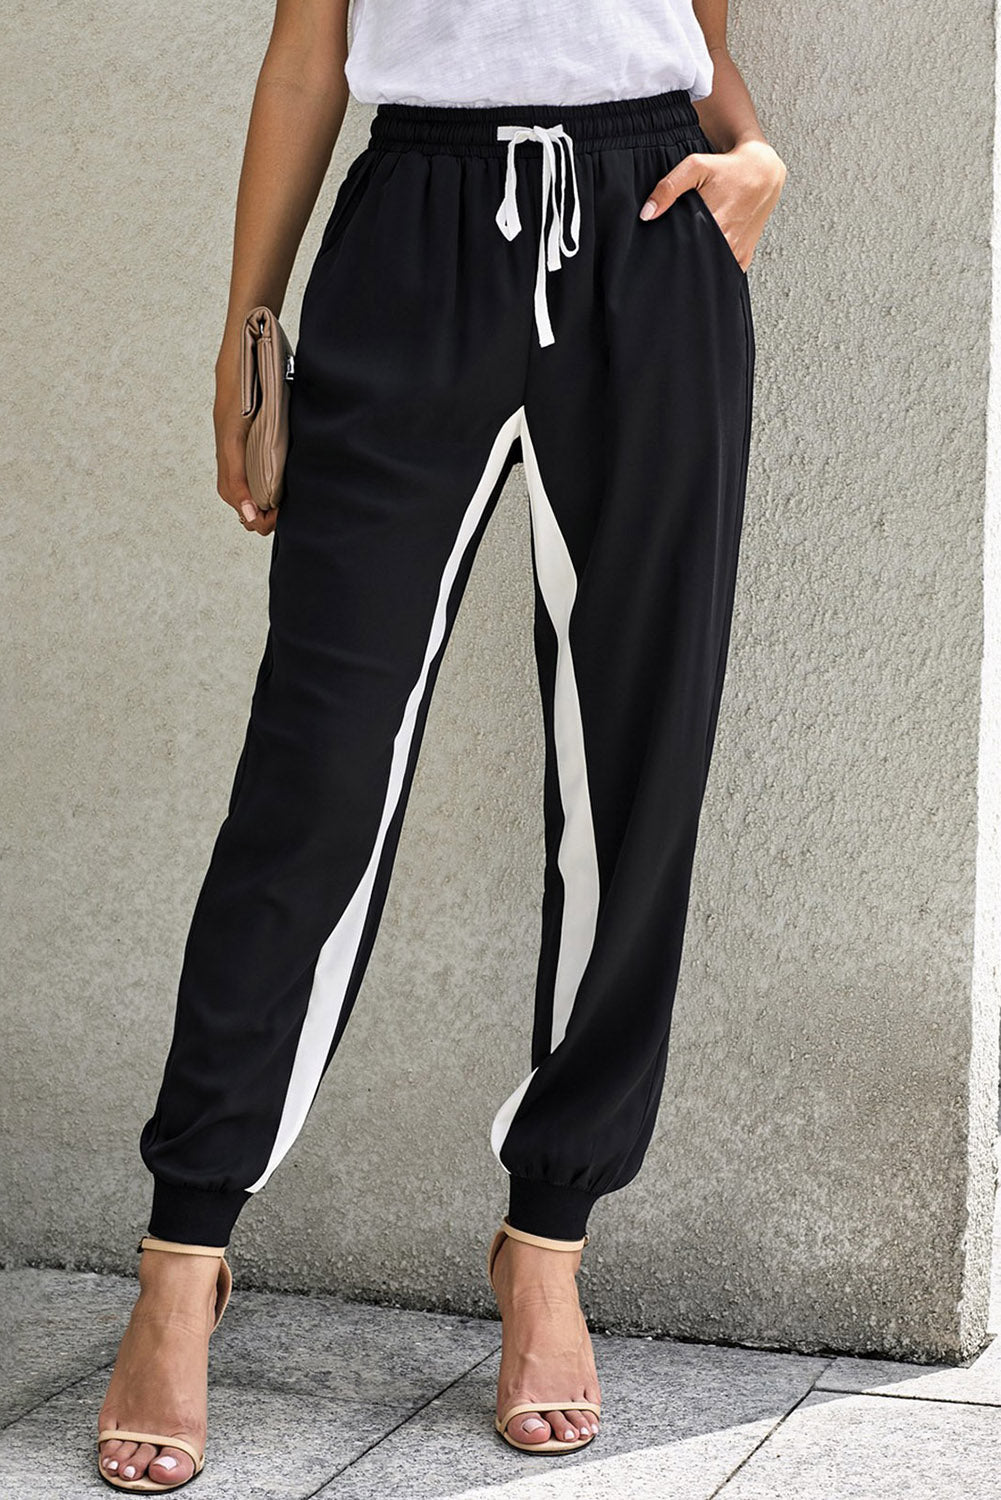 Black Casual Striped Drawstring Pants Pants & Culotte Discount Designer Fashion Clothes Shoes Bags Women Men Kids Children Black Owned Business